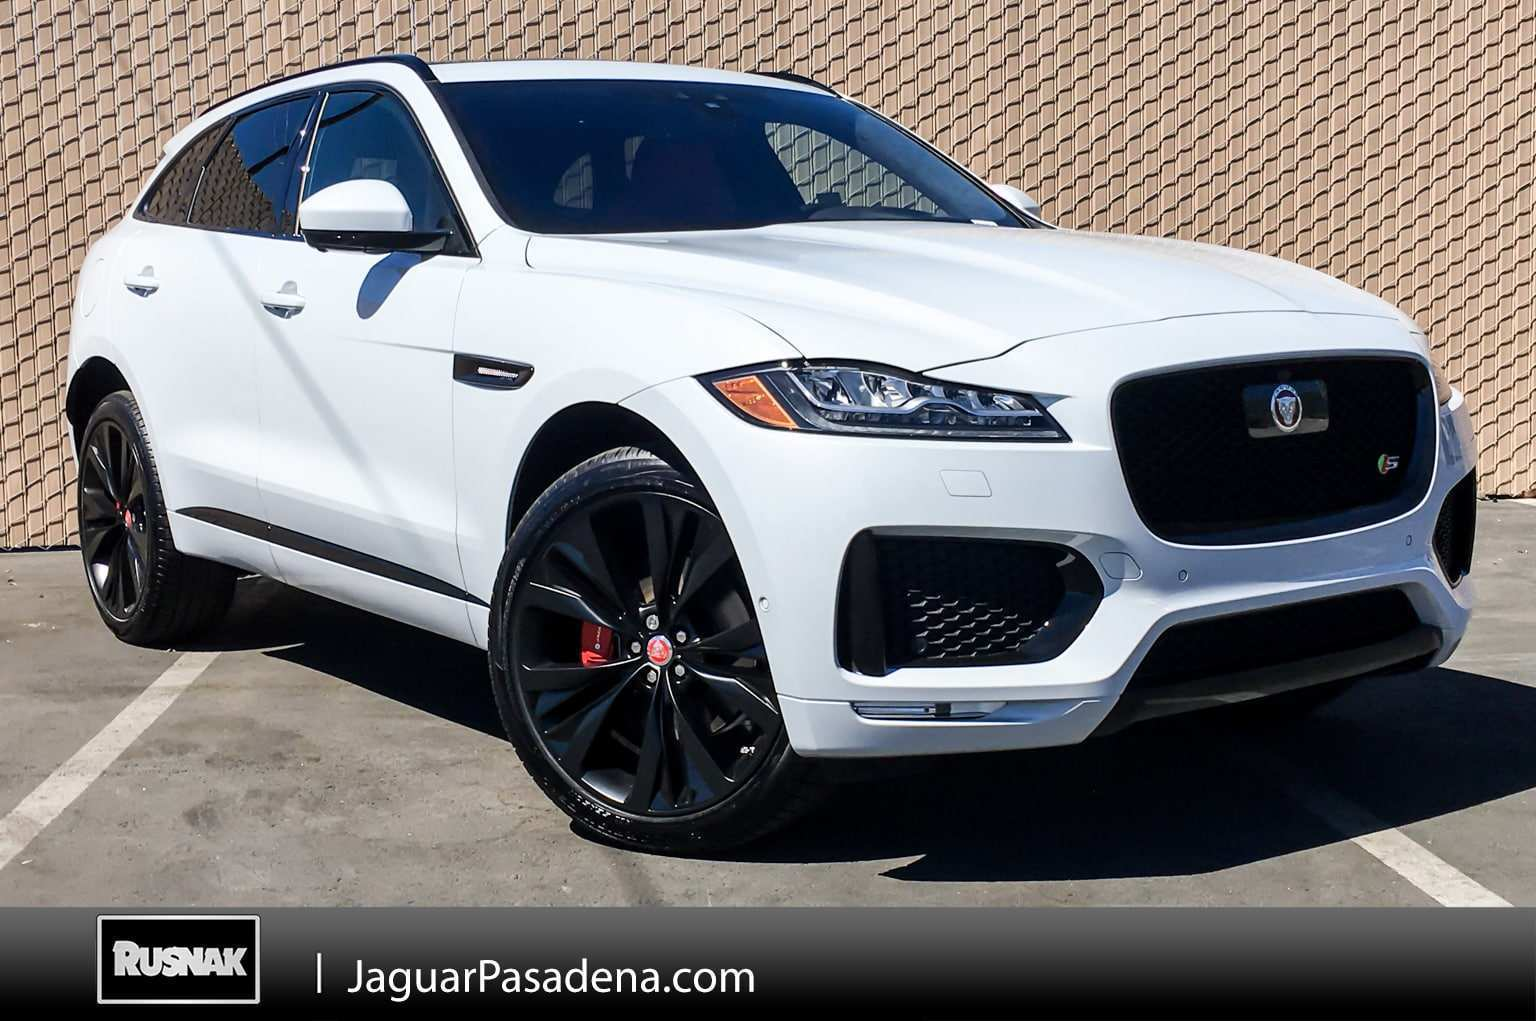 88 Best Review 2019 Jaguar F Pace Changes Pricing by 2019 Jaguar F Pace Changes